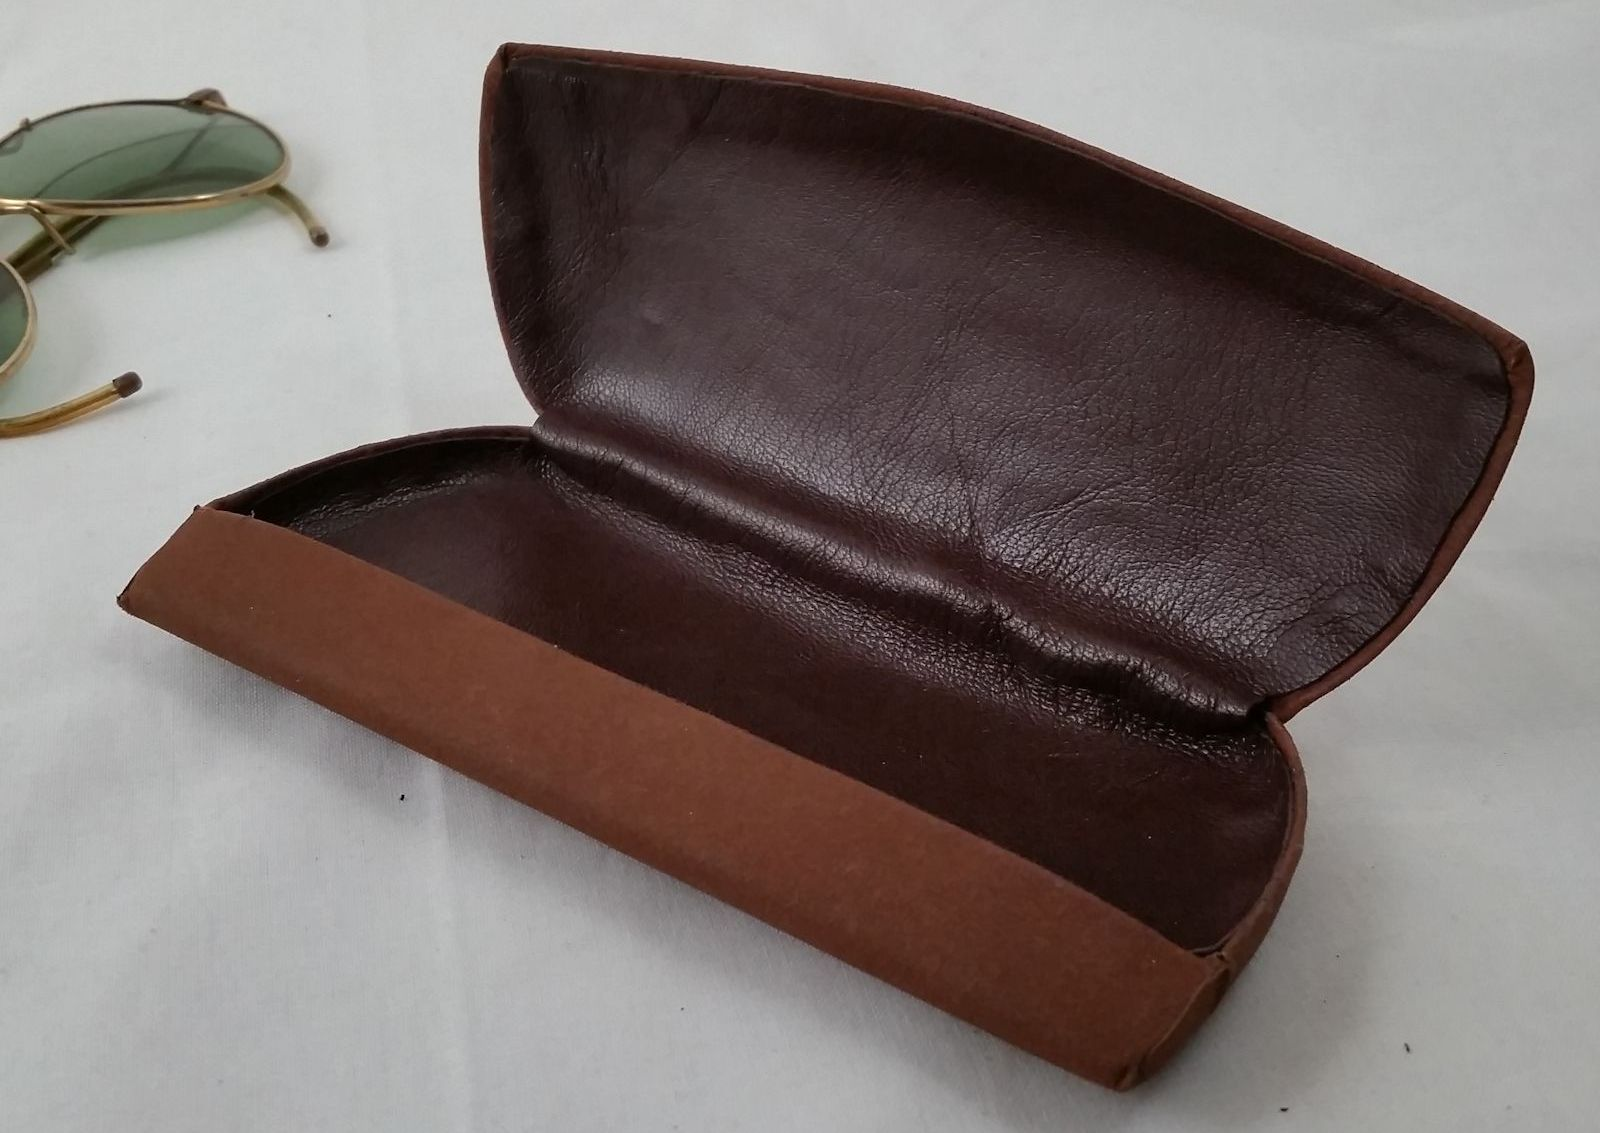 Refurbished with new Lambskin Liners Antique Eyeglass Cases